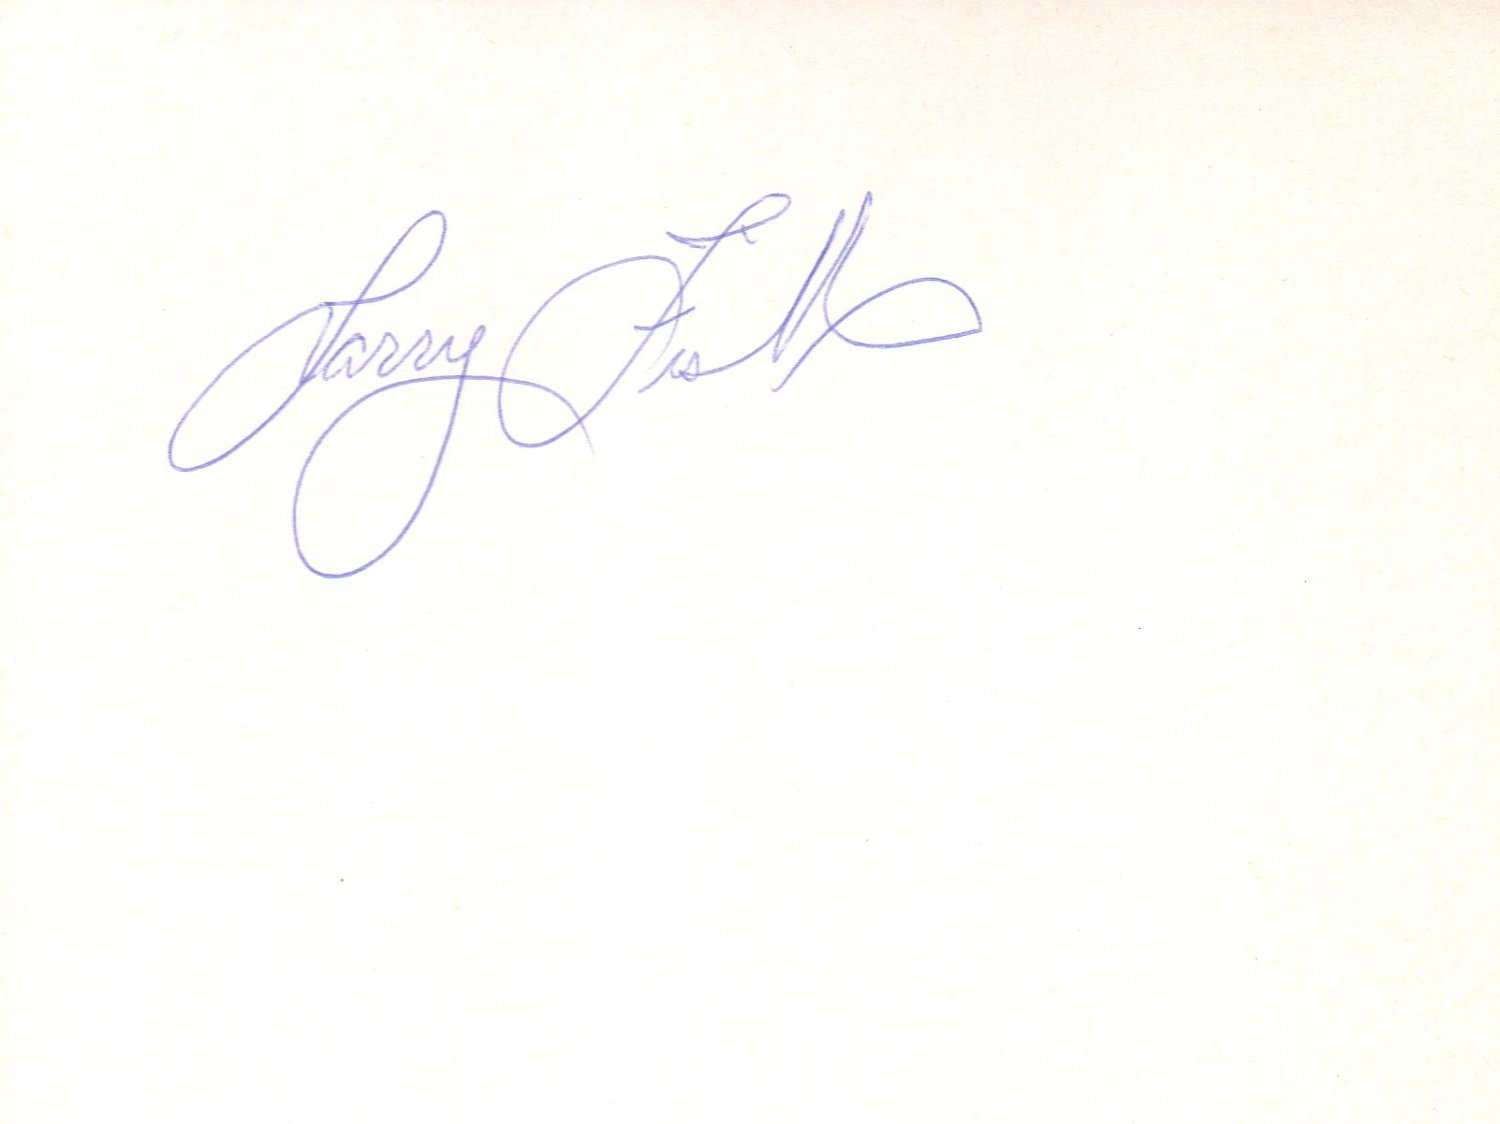 Laurence Fishburne hand signed 4x6 album page